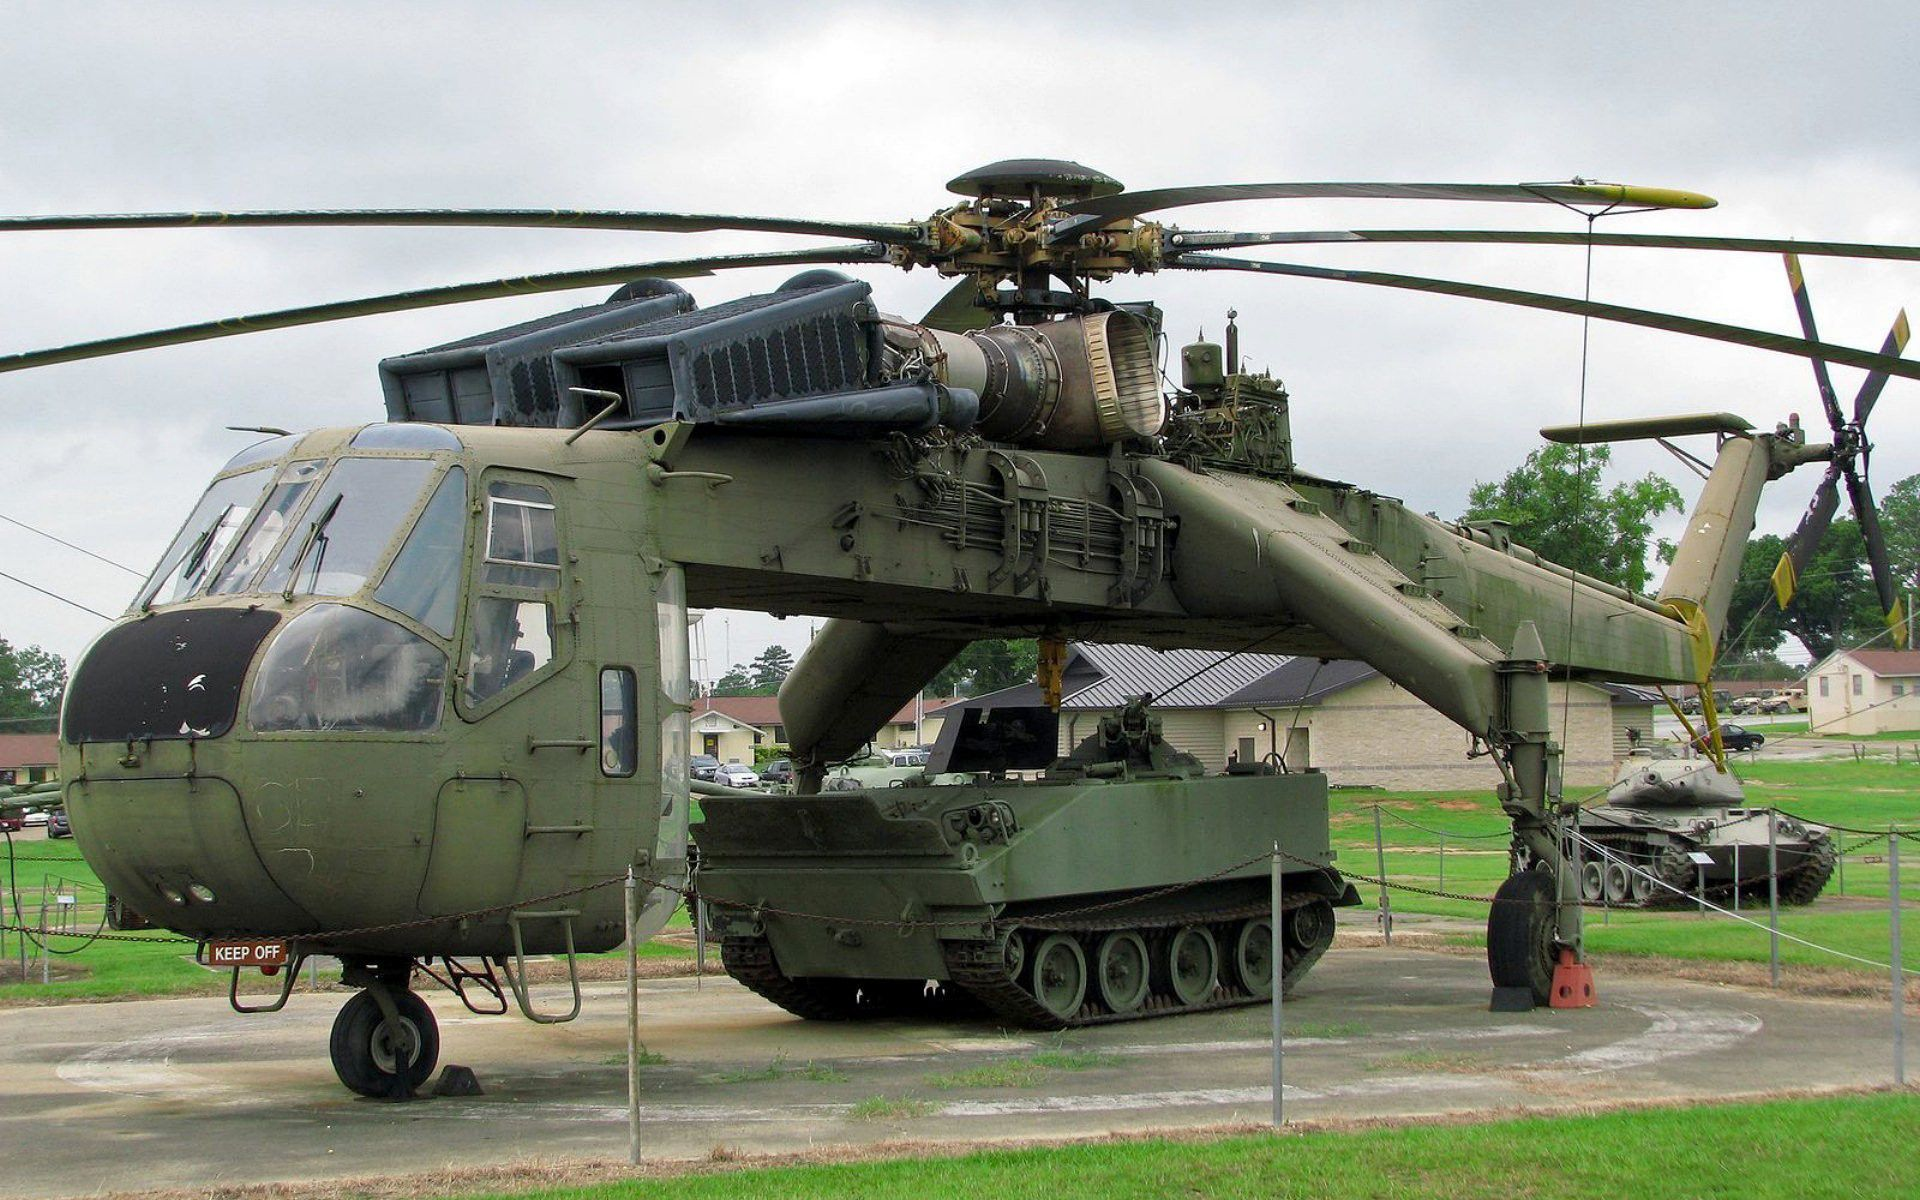 military, helicopters, cab, engine, blade, painting, weapons